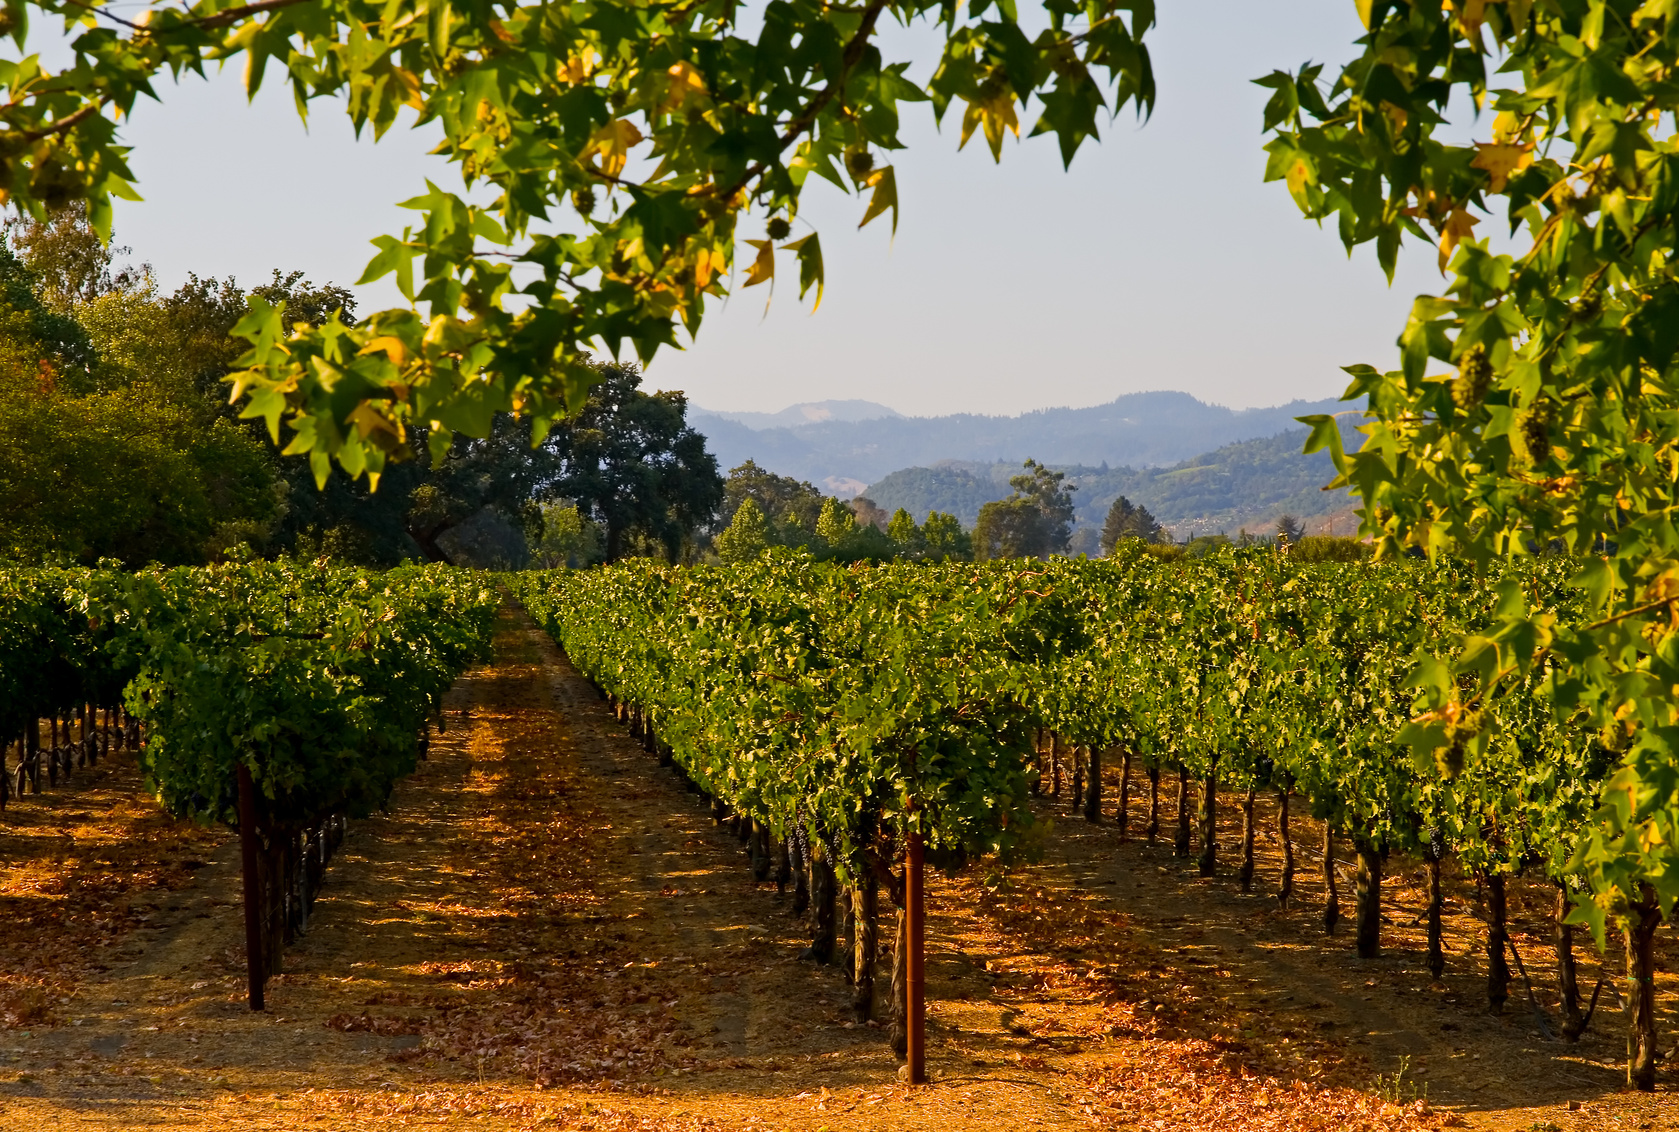 Sonoma Valley The Ideal Wine Country Destination